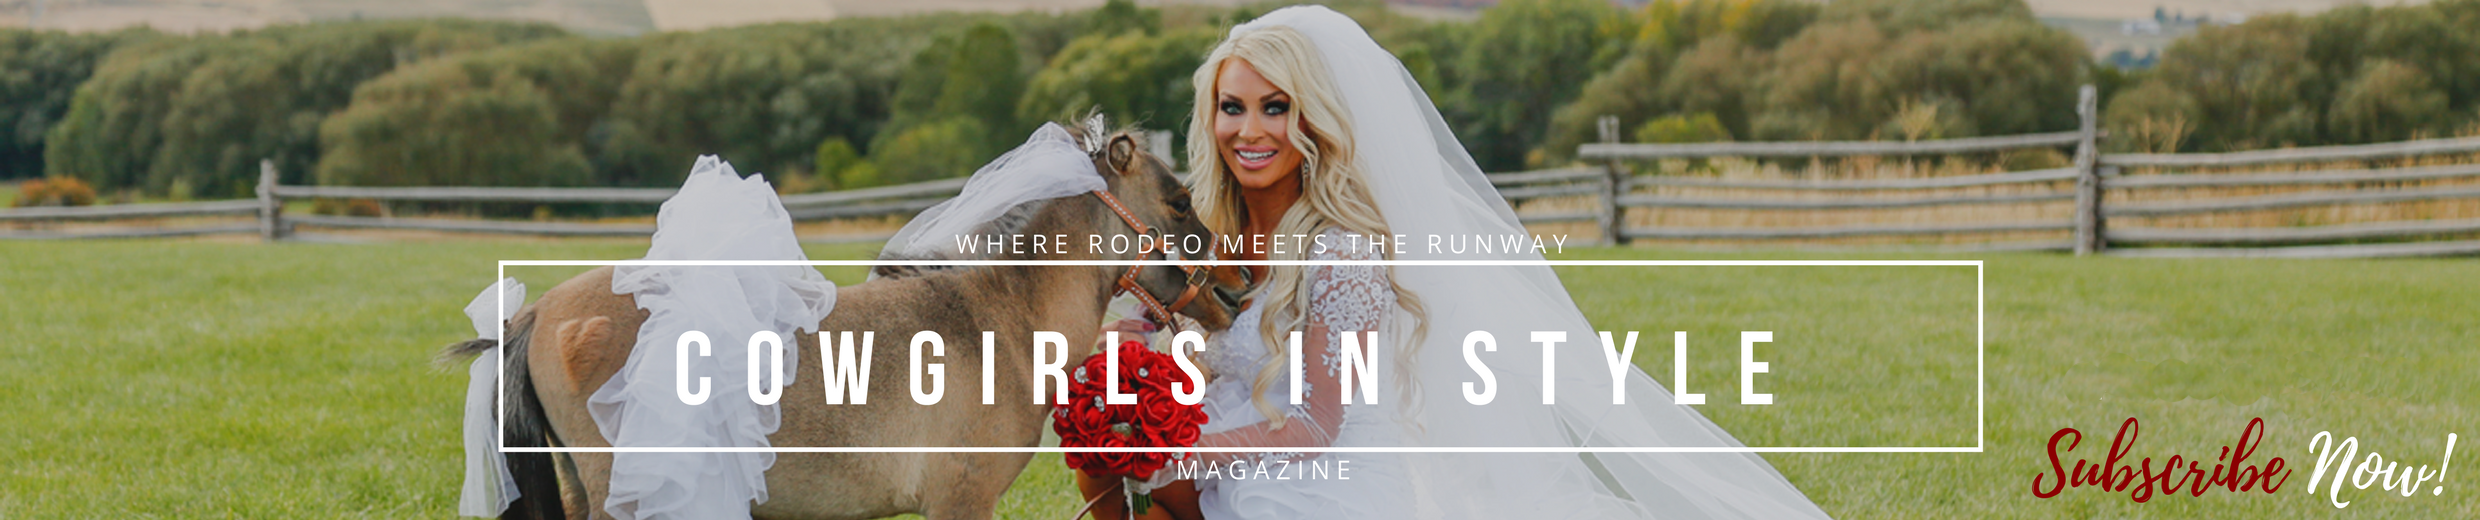 Stable Life Archives - Cowgirls In Style Magazine